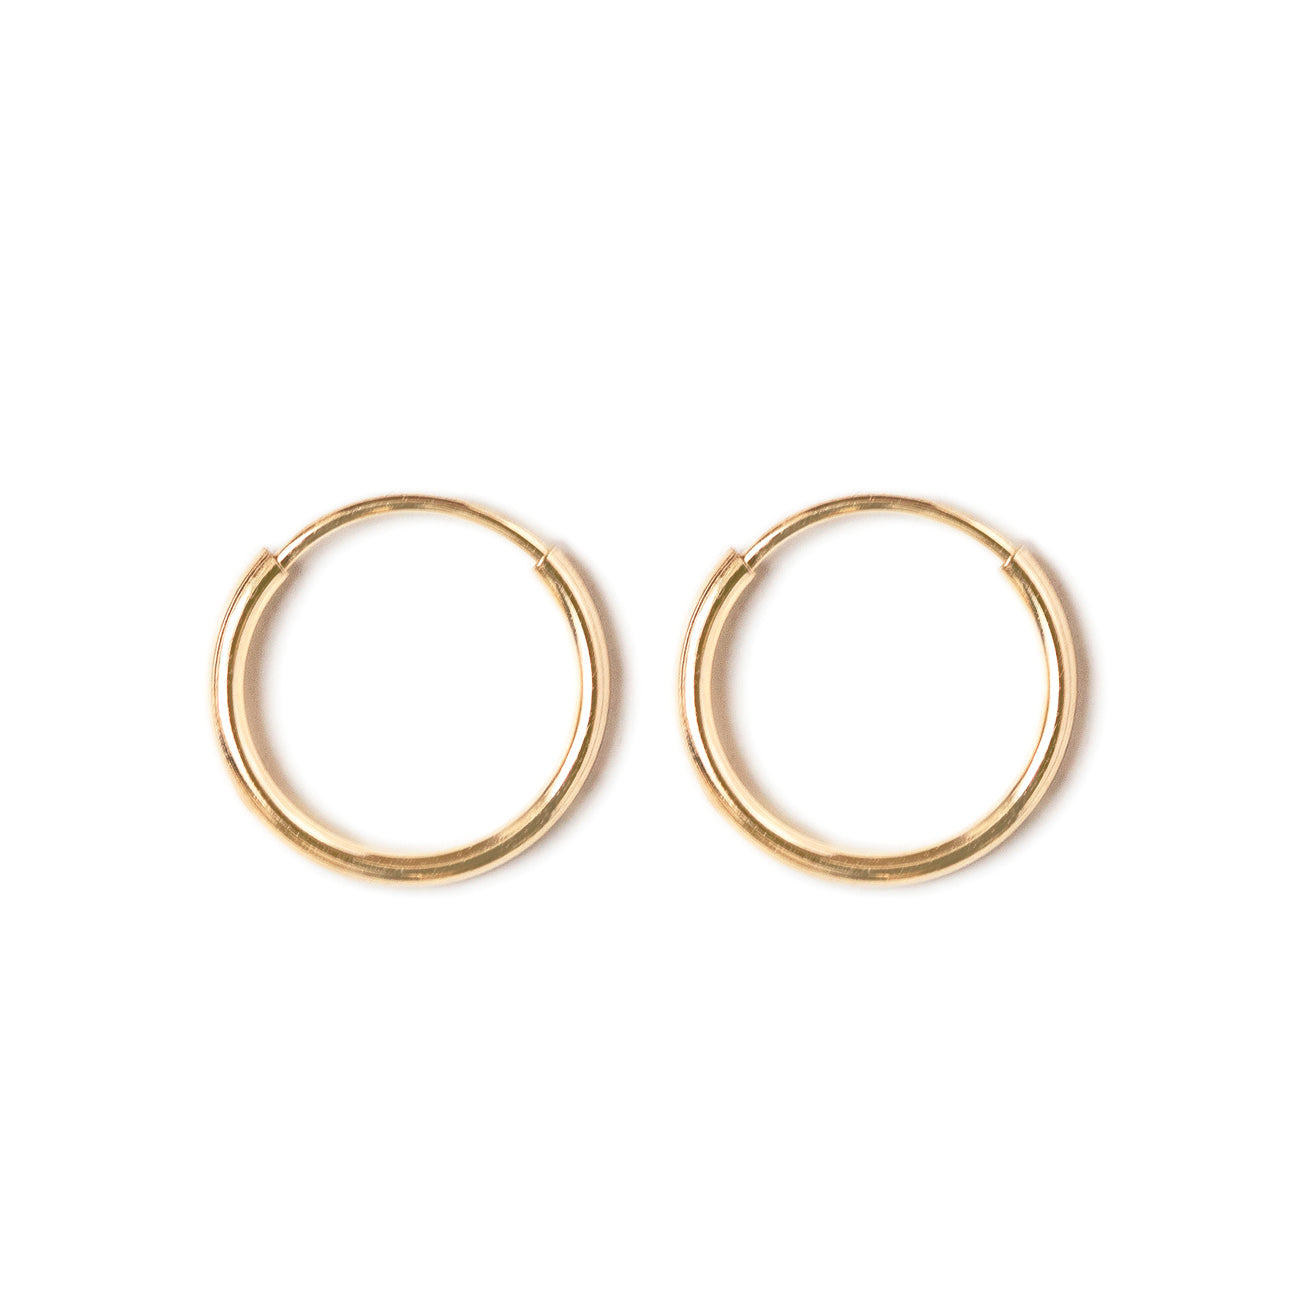 14k gold thin endless huggie earrings